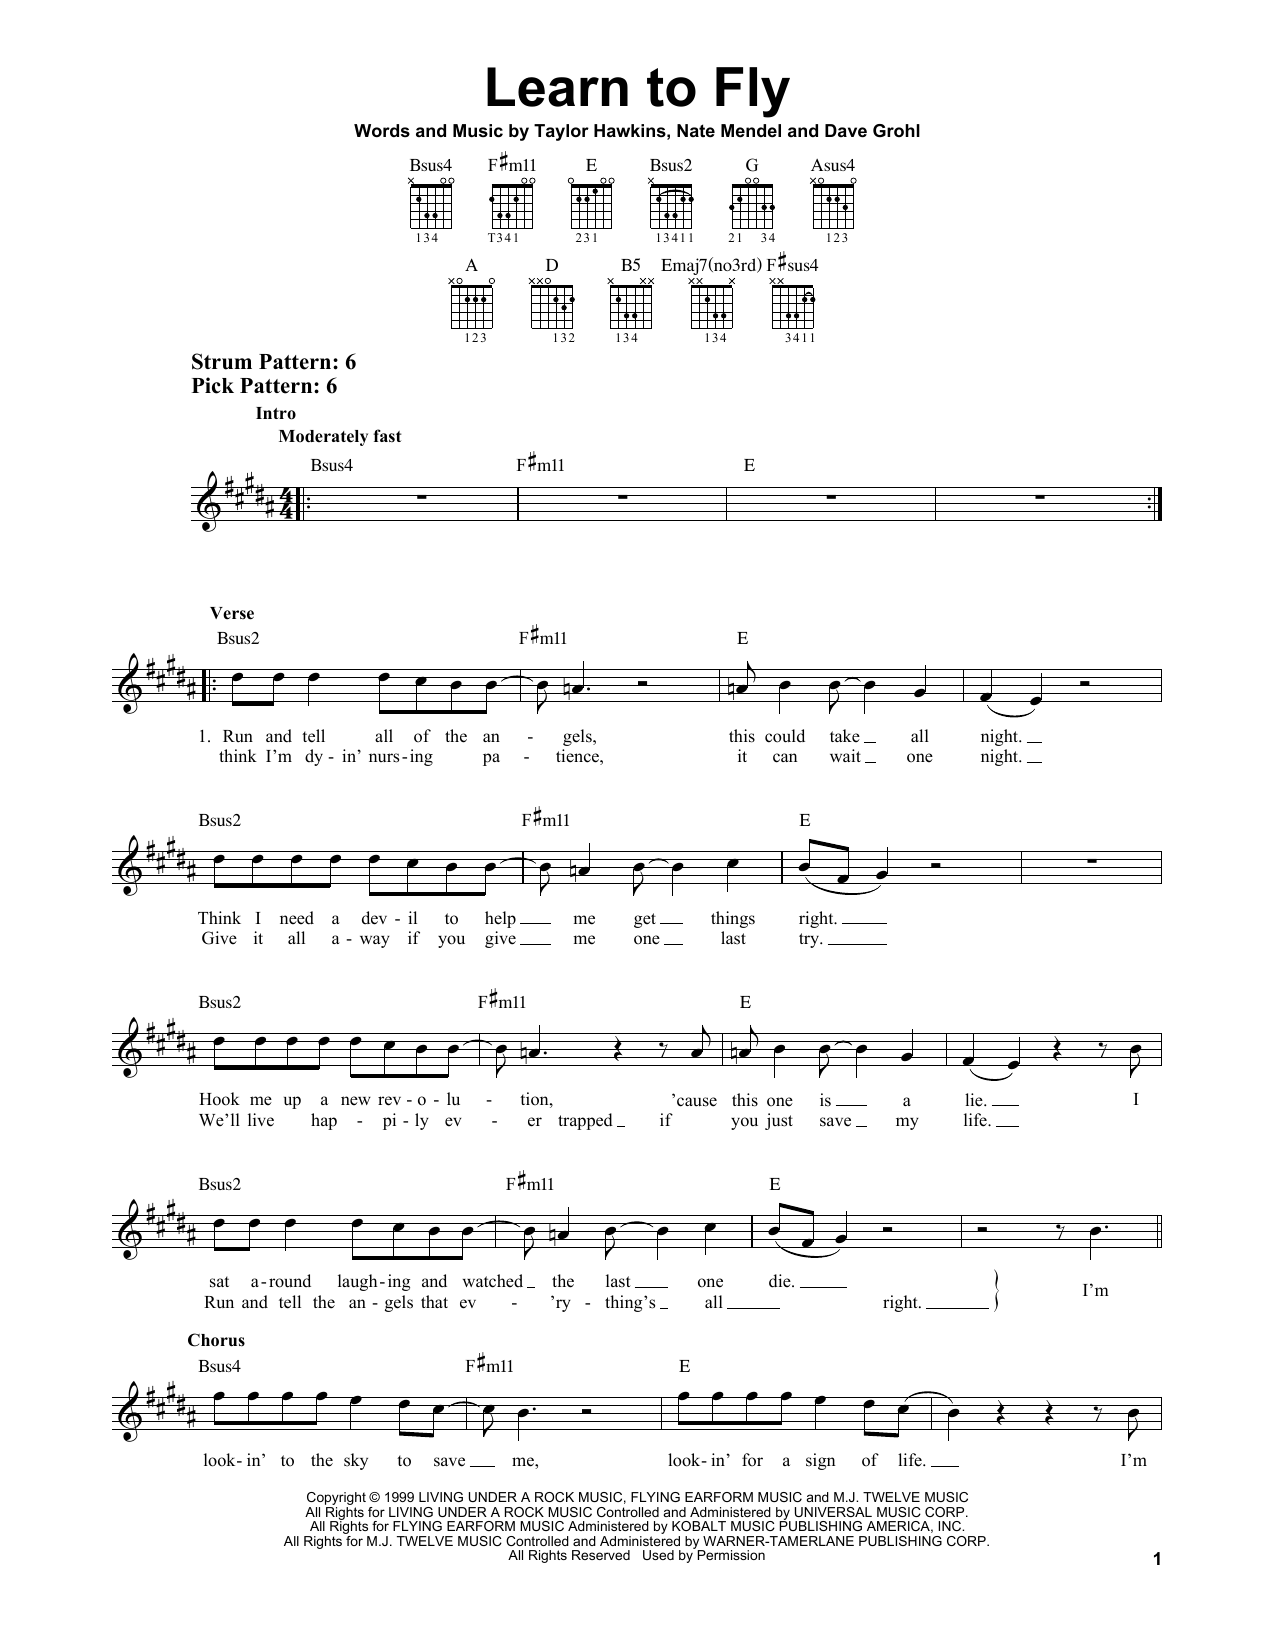 Foo Fighters - Learn to Fly - Guitar Lessons - How to play ...